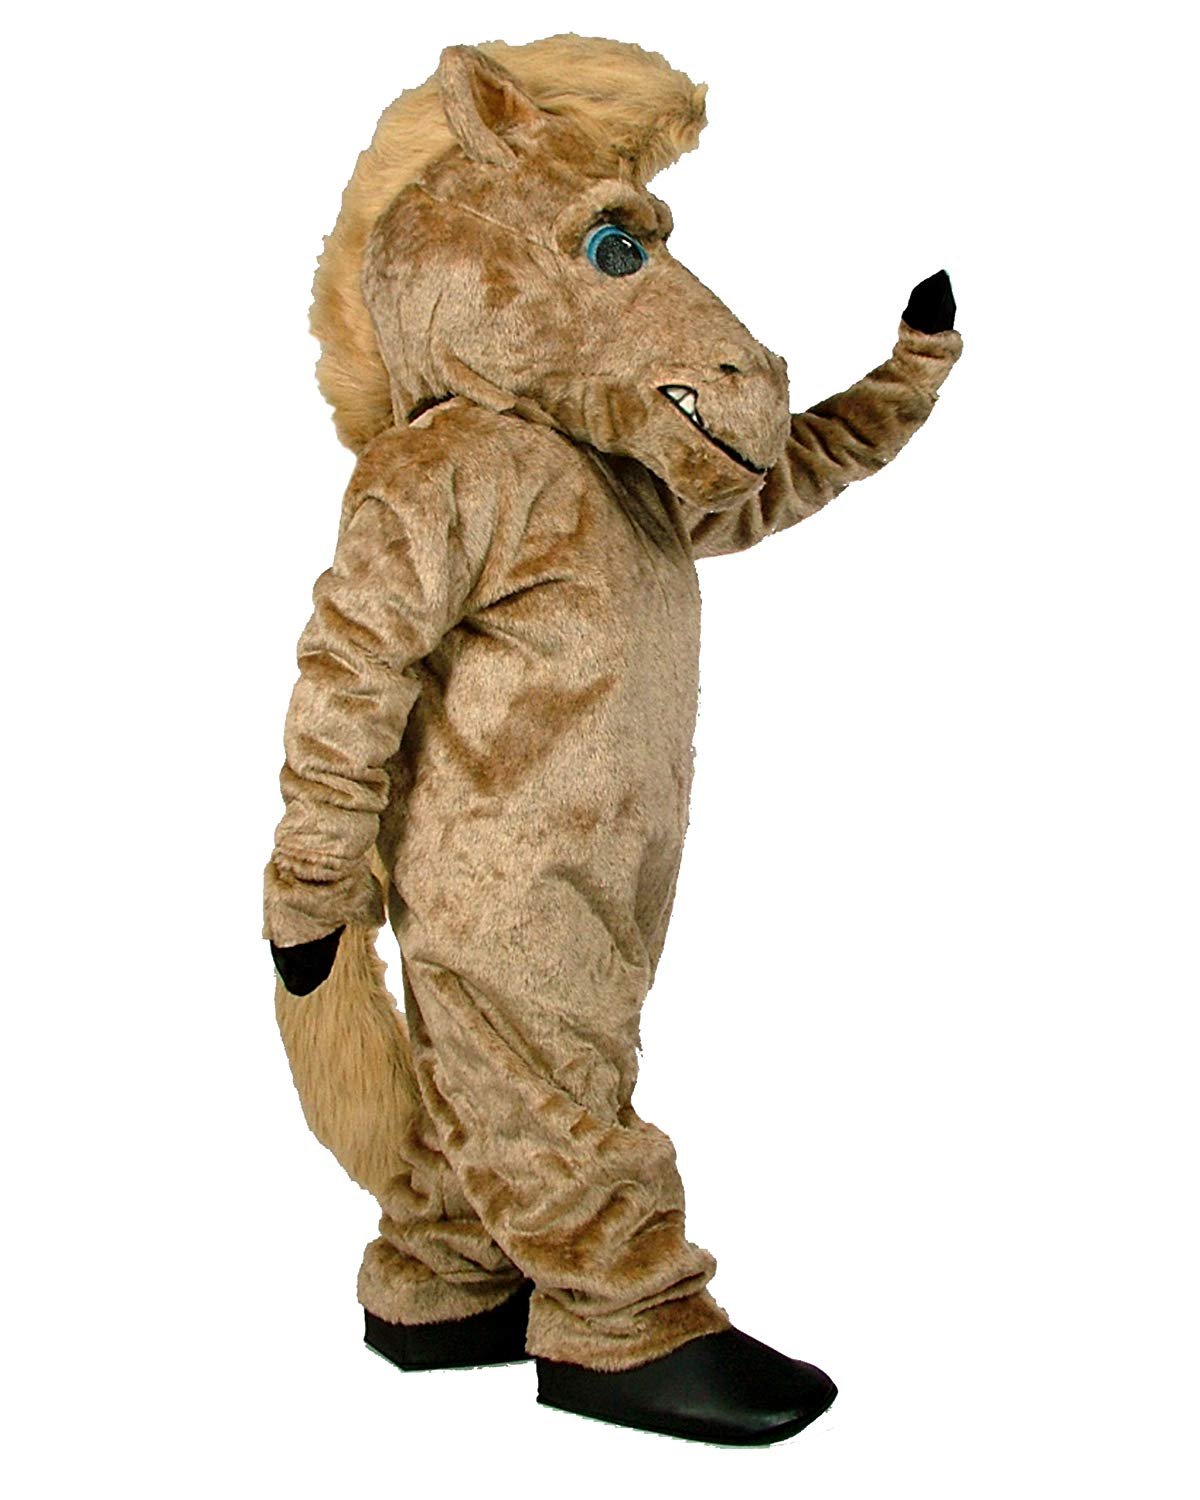 Cheap Diy Horse Costume Find Diy Horse Costume Deals On Line At Alibaba Com